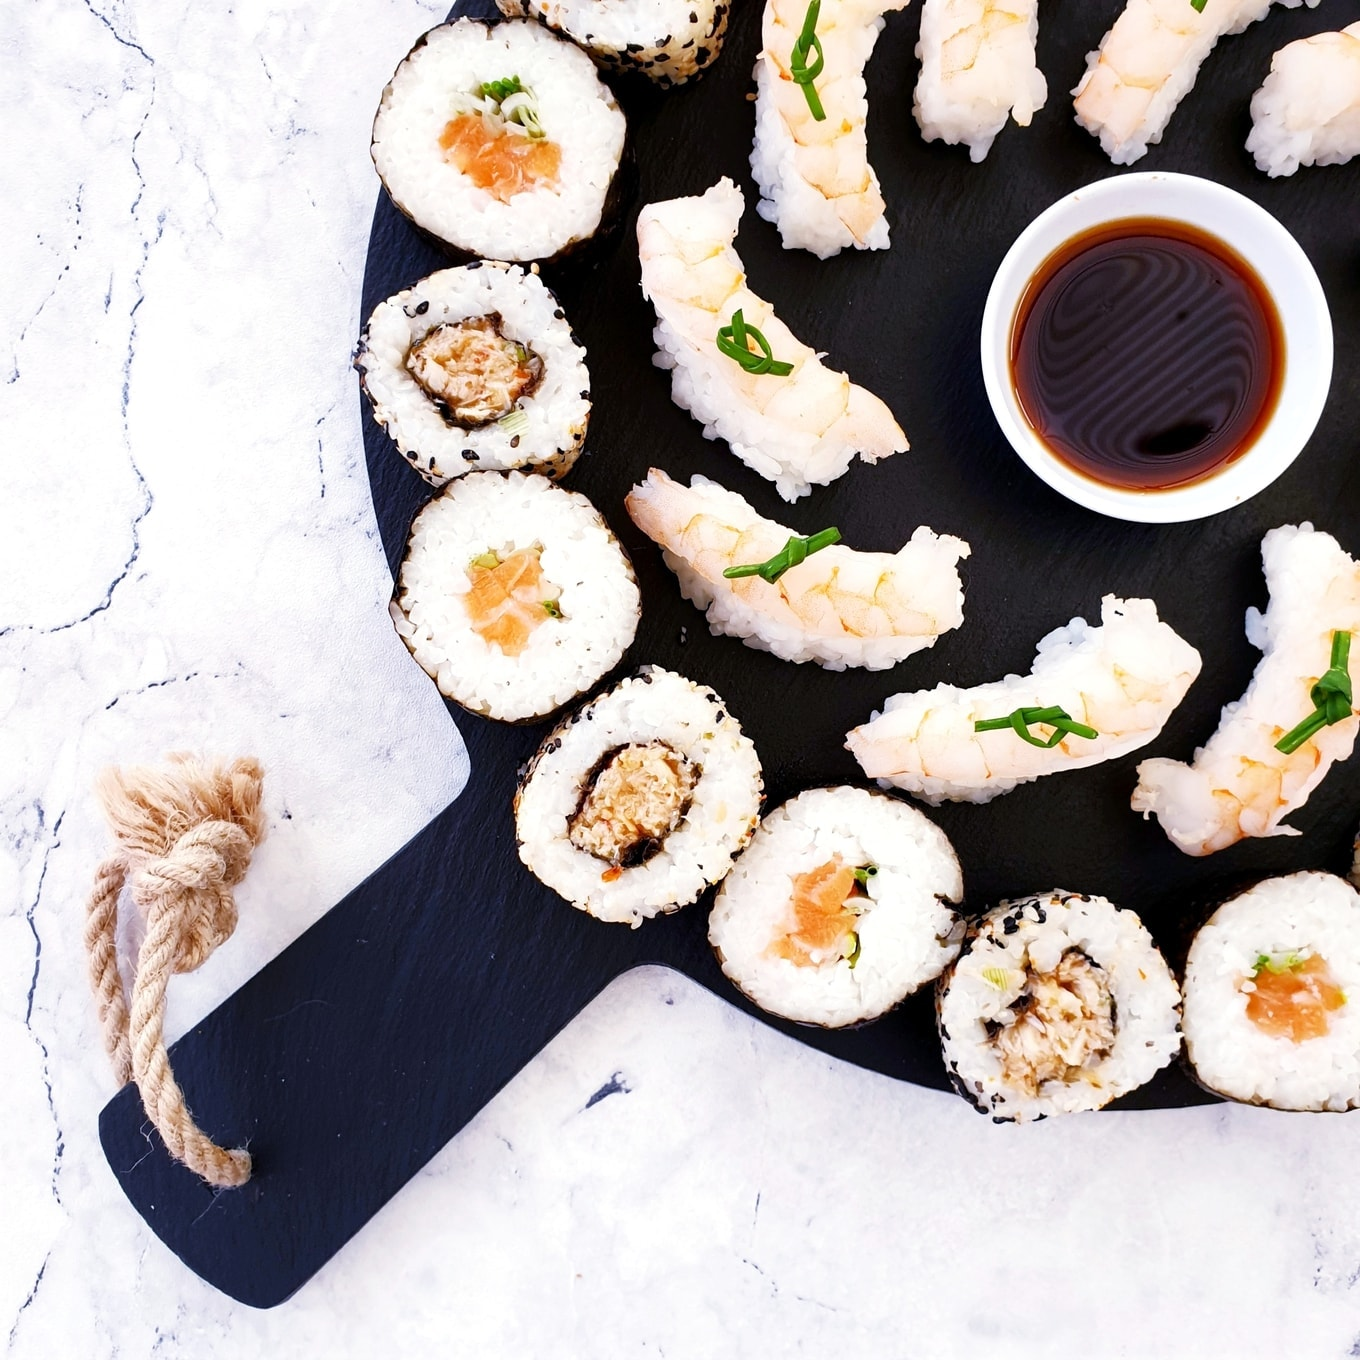 Everyday Asian Feast: Sushi Platter